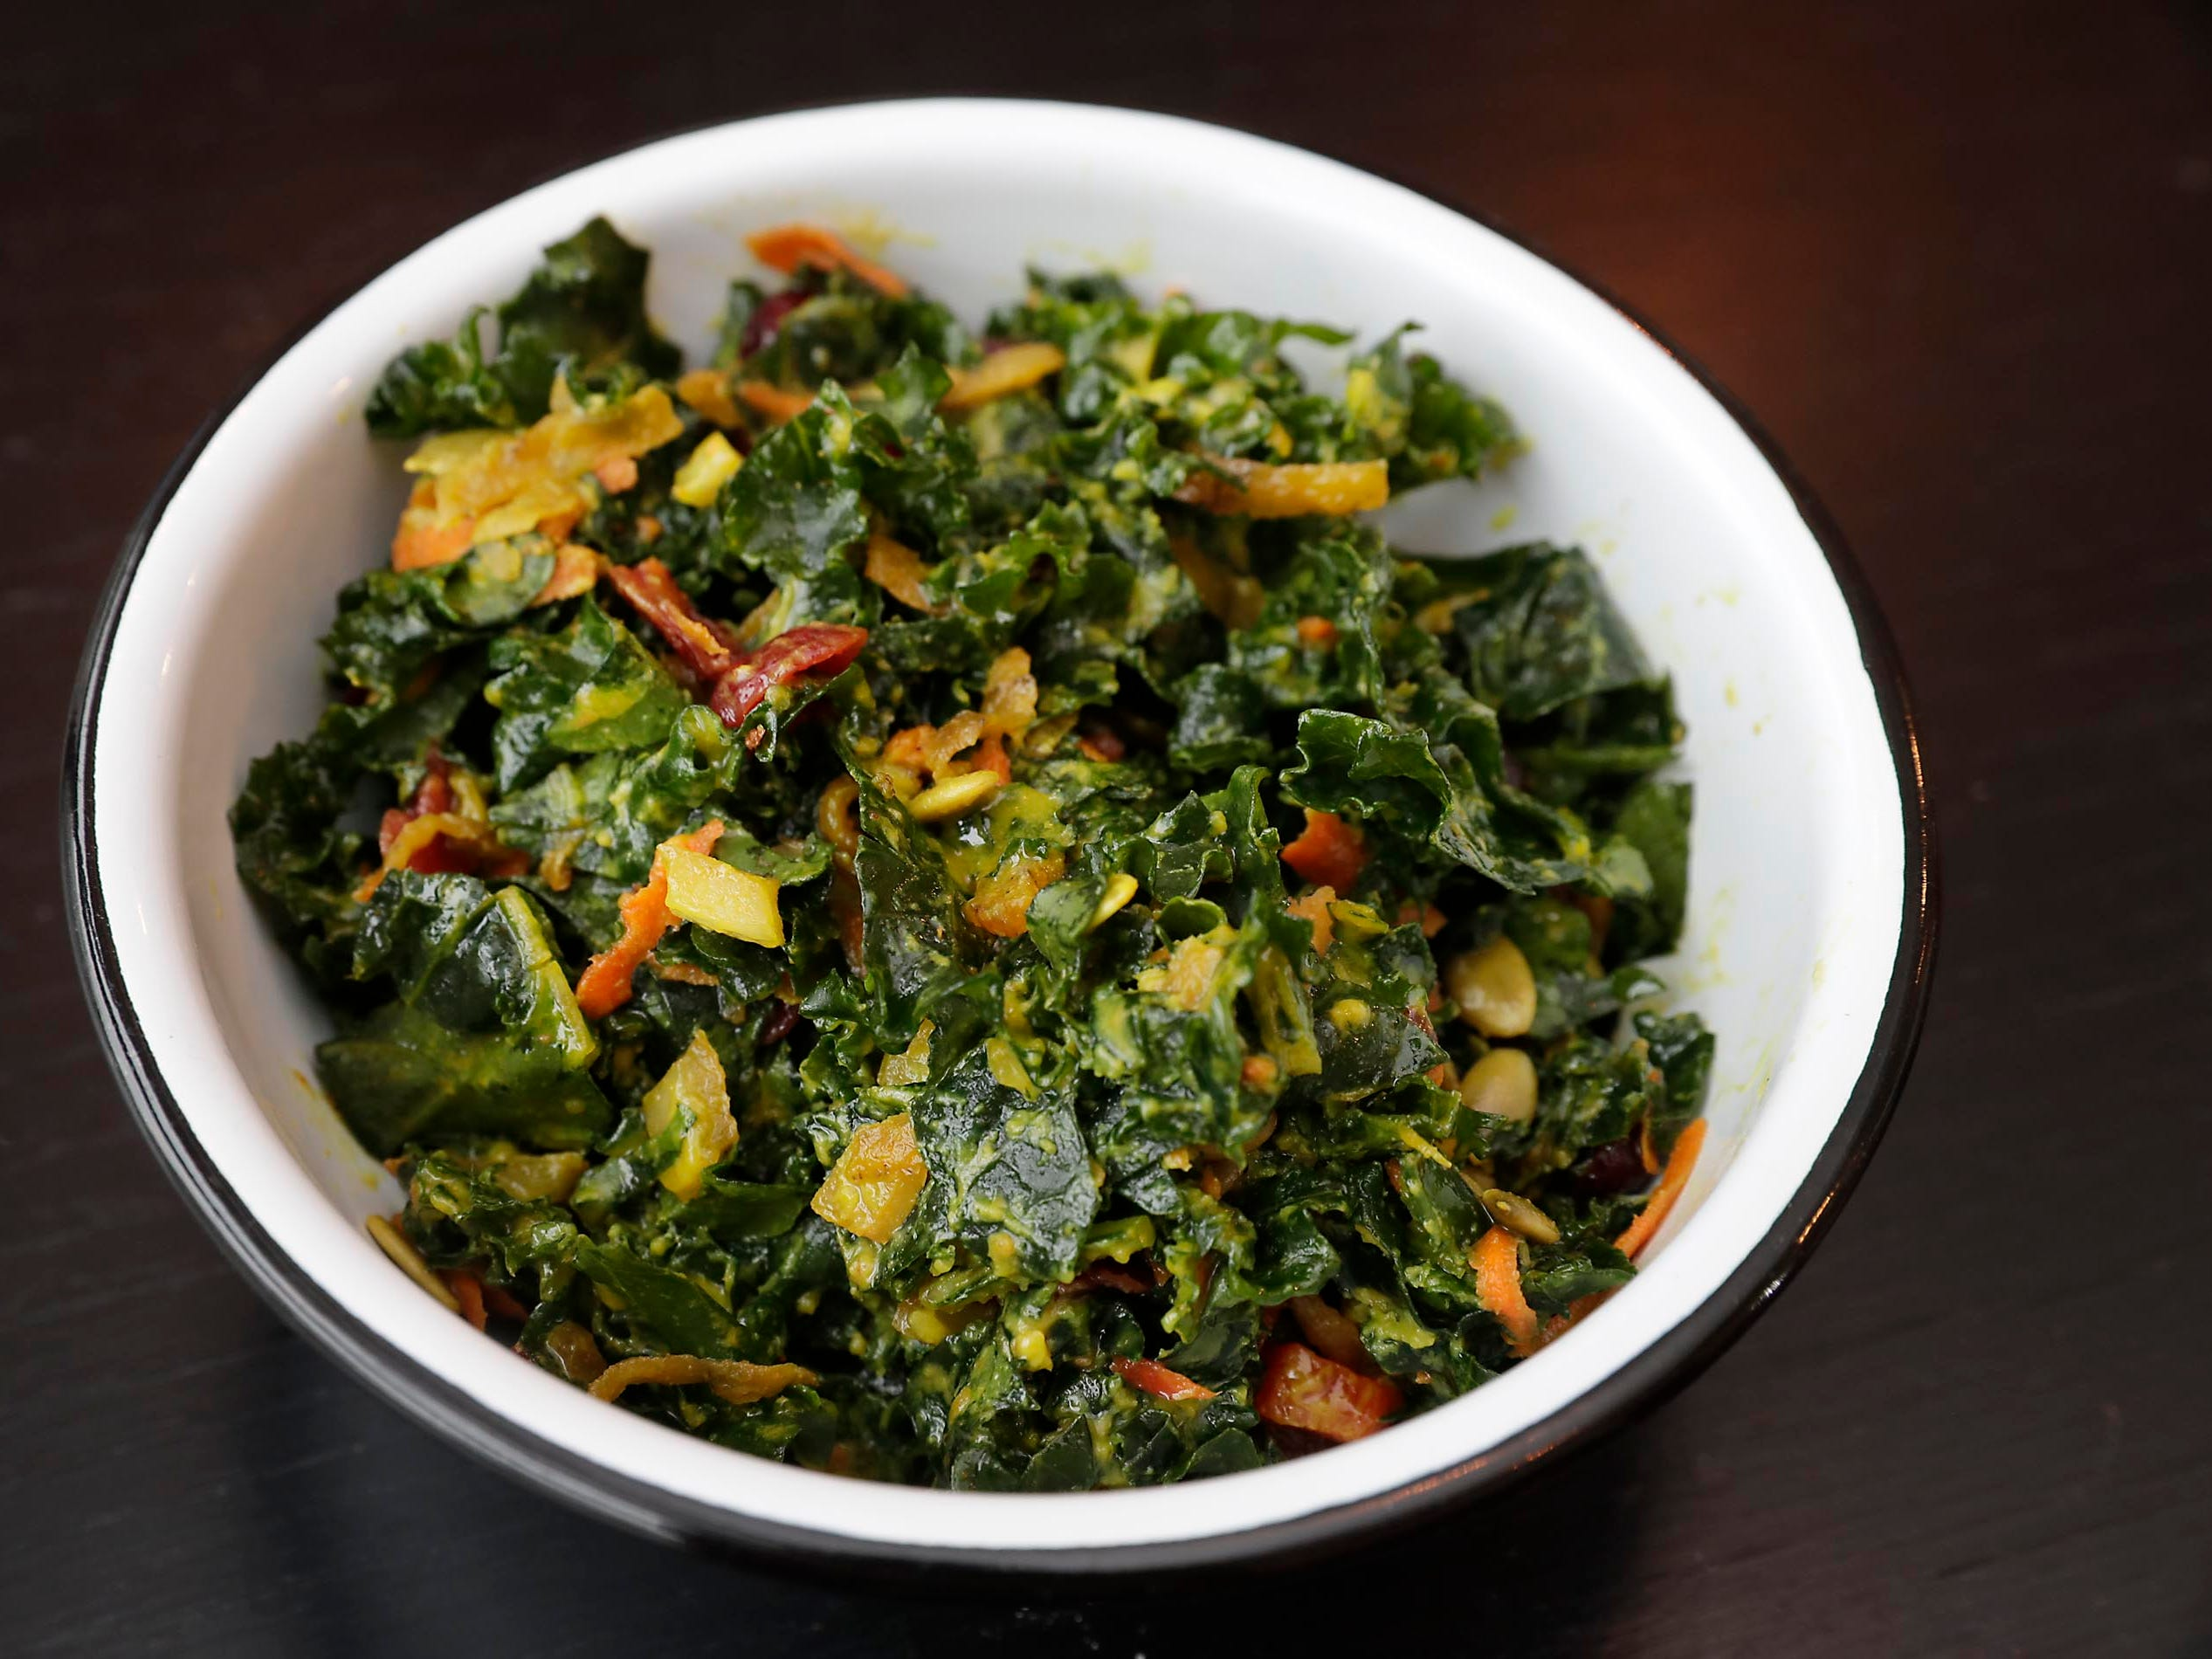 A kale salad is featured at  SmallPie. Salads and other side items work well with the many pies